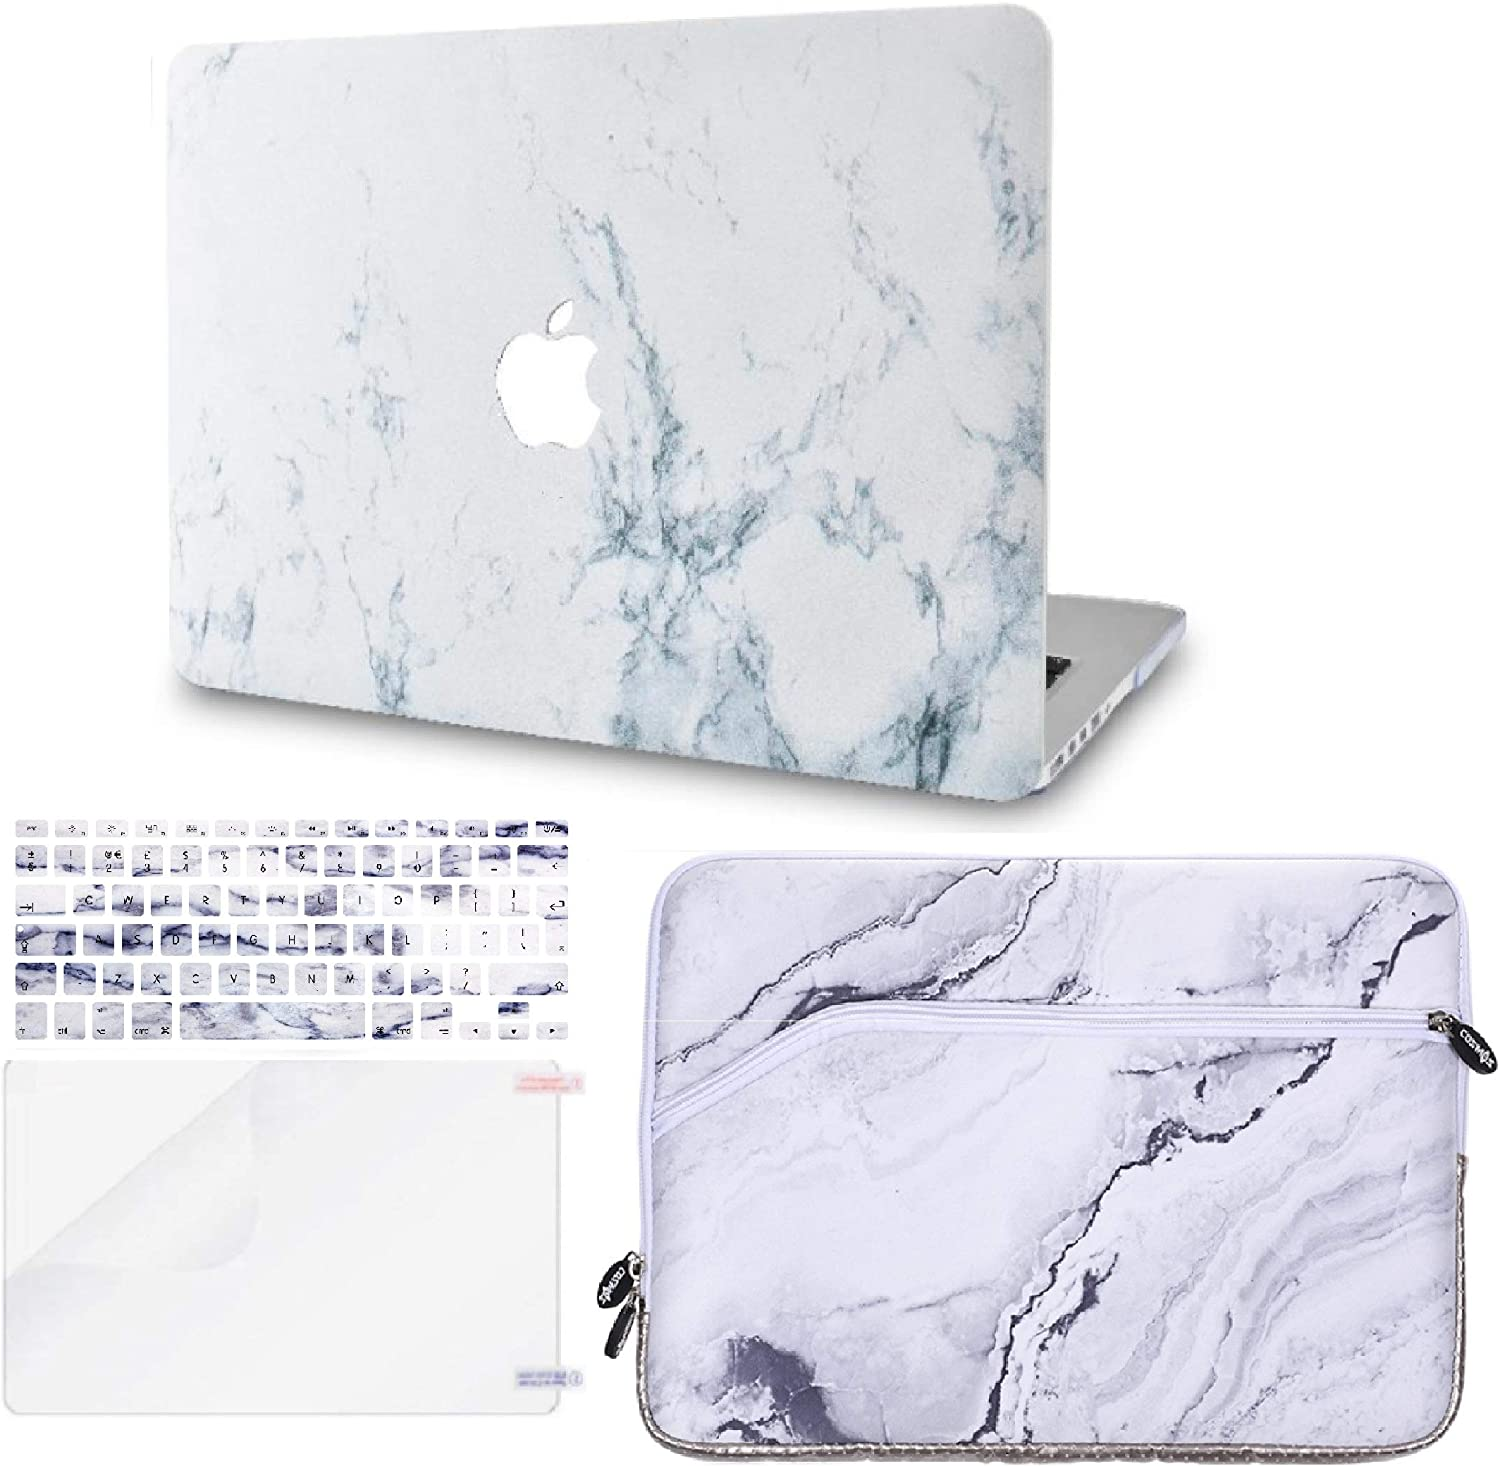 Black Leather Screen Protector w//UK Keyboard Cover Leather Folio Italian Pebble Leather 2020//2019//2018//2017//2016 KECC MacBook Pro 13 Case Sleeve A2159//A1989//A1706//A1708 Touch Bar